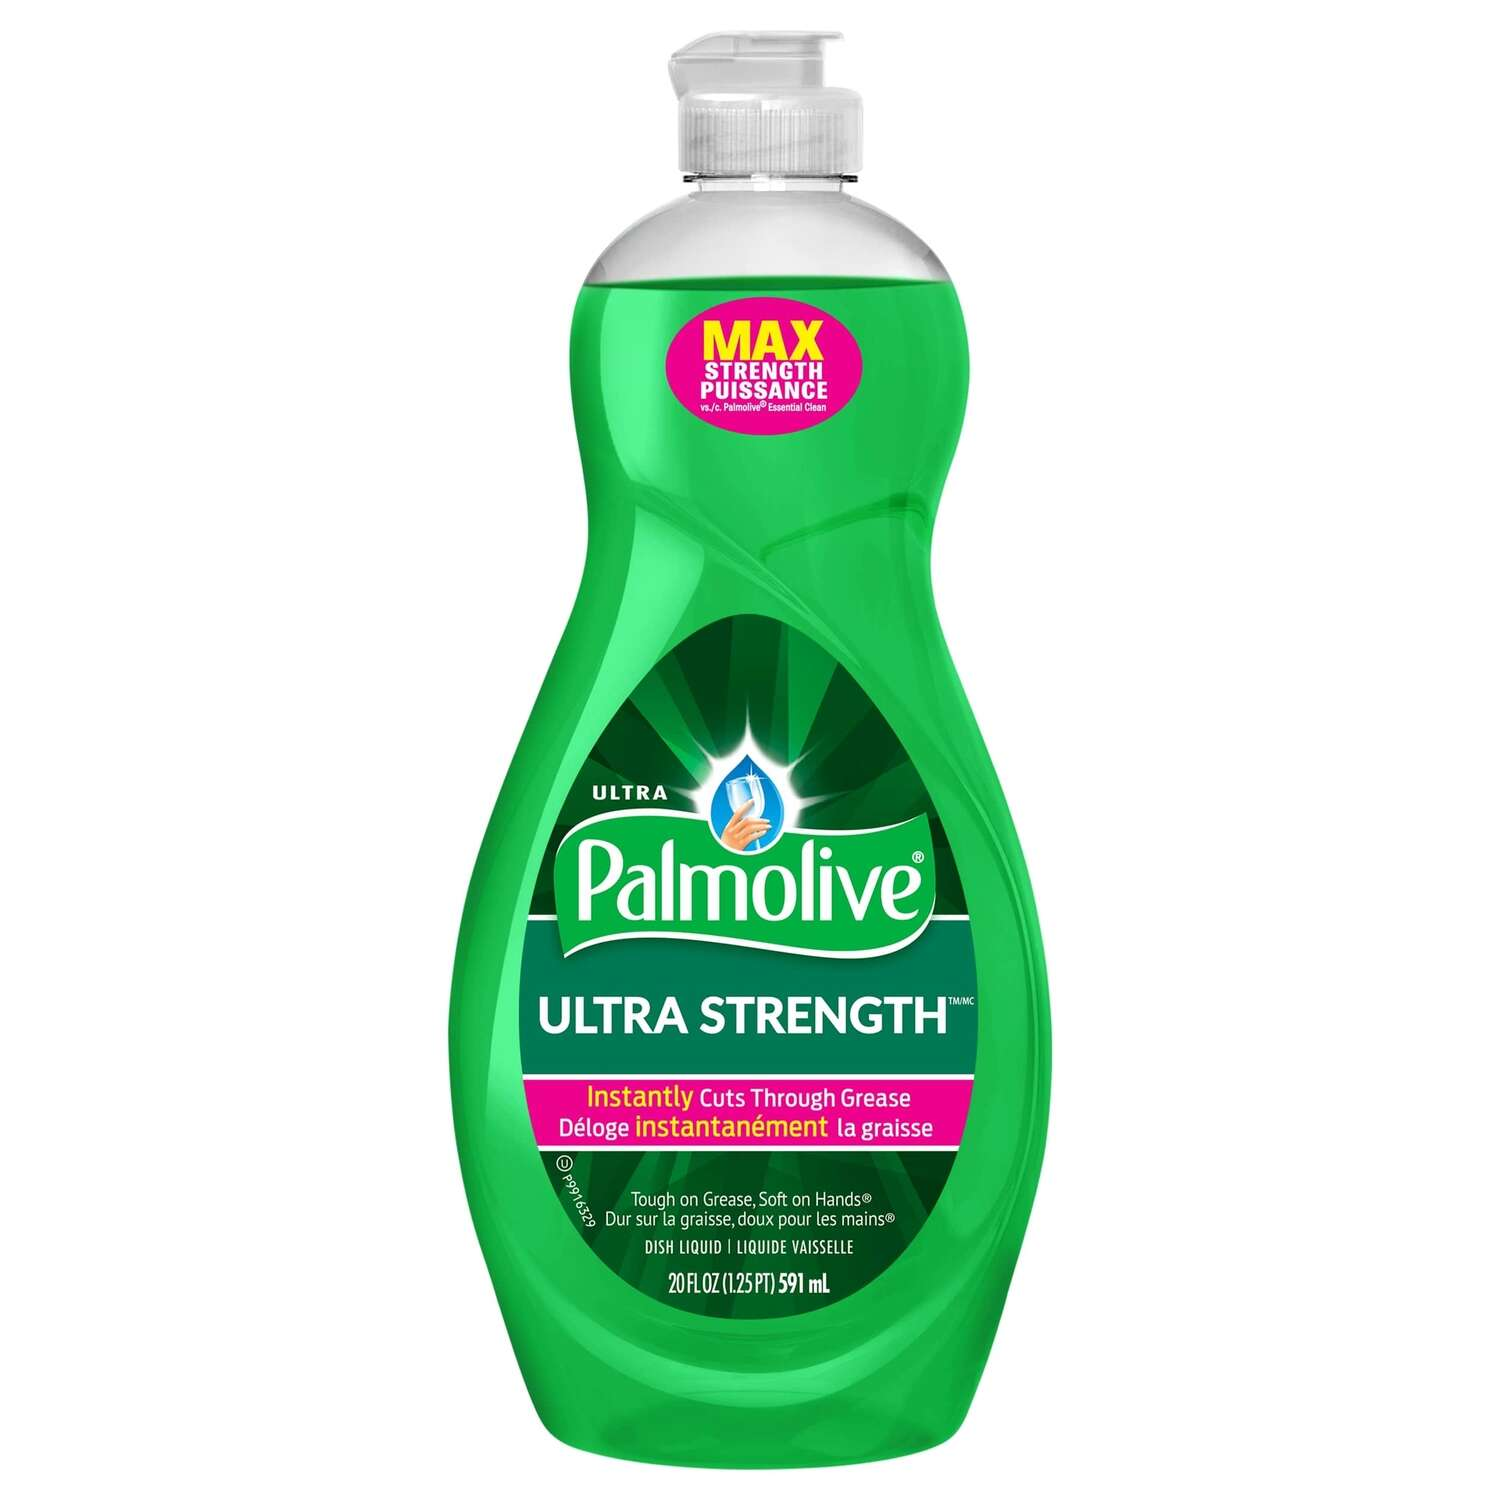 Palmolive  Ultra Strength  Citrus Scent Liquid  Dish Soap  20 oz.